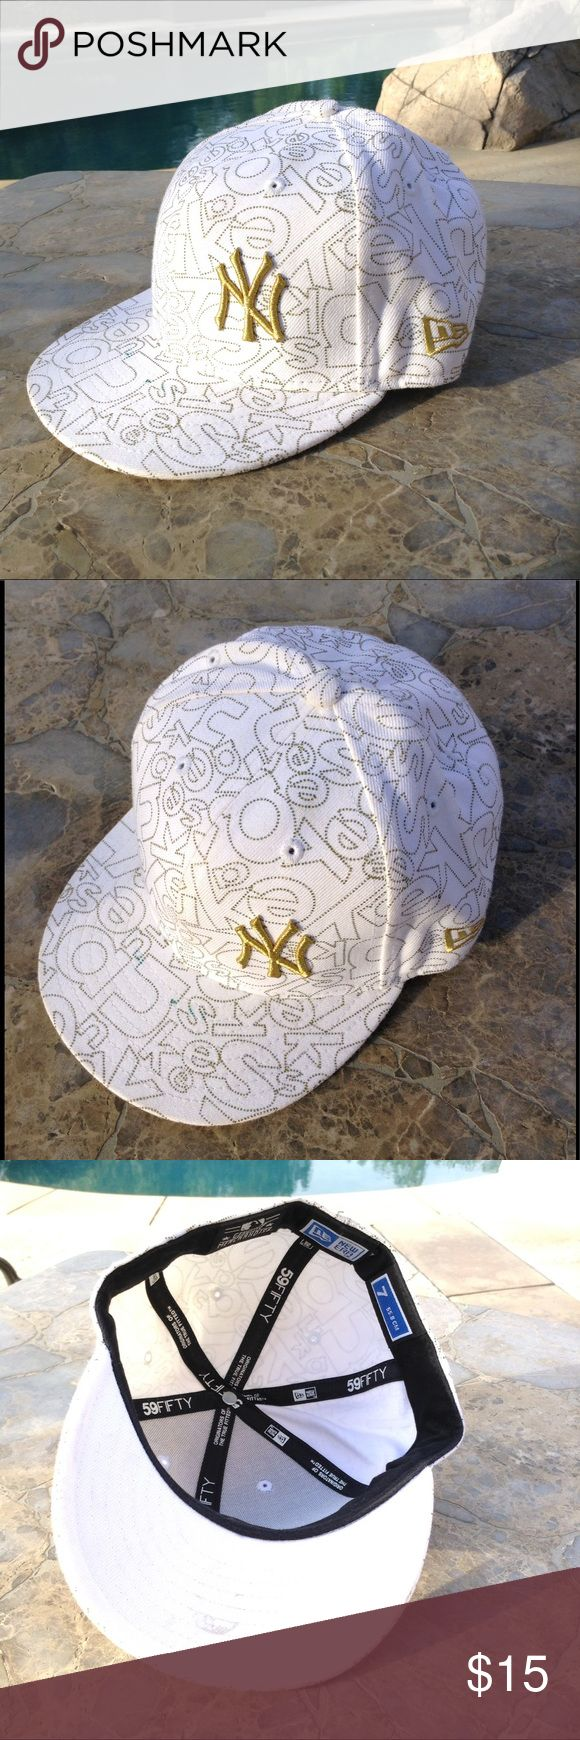 New Era Yankee Cap White and gold New Era Yankee cap. Size 7 True Fit 59 Fifty. Not even broken in. Clean with small marks on bill. Not noticeable. May come off! New Era Accessories Hats